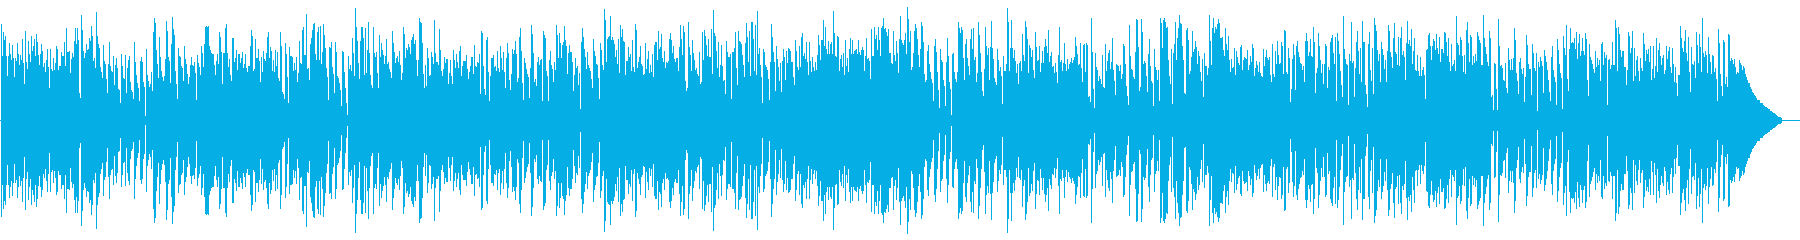 House of the Rising Sun Female Jazz's reproduced waveform